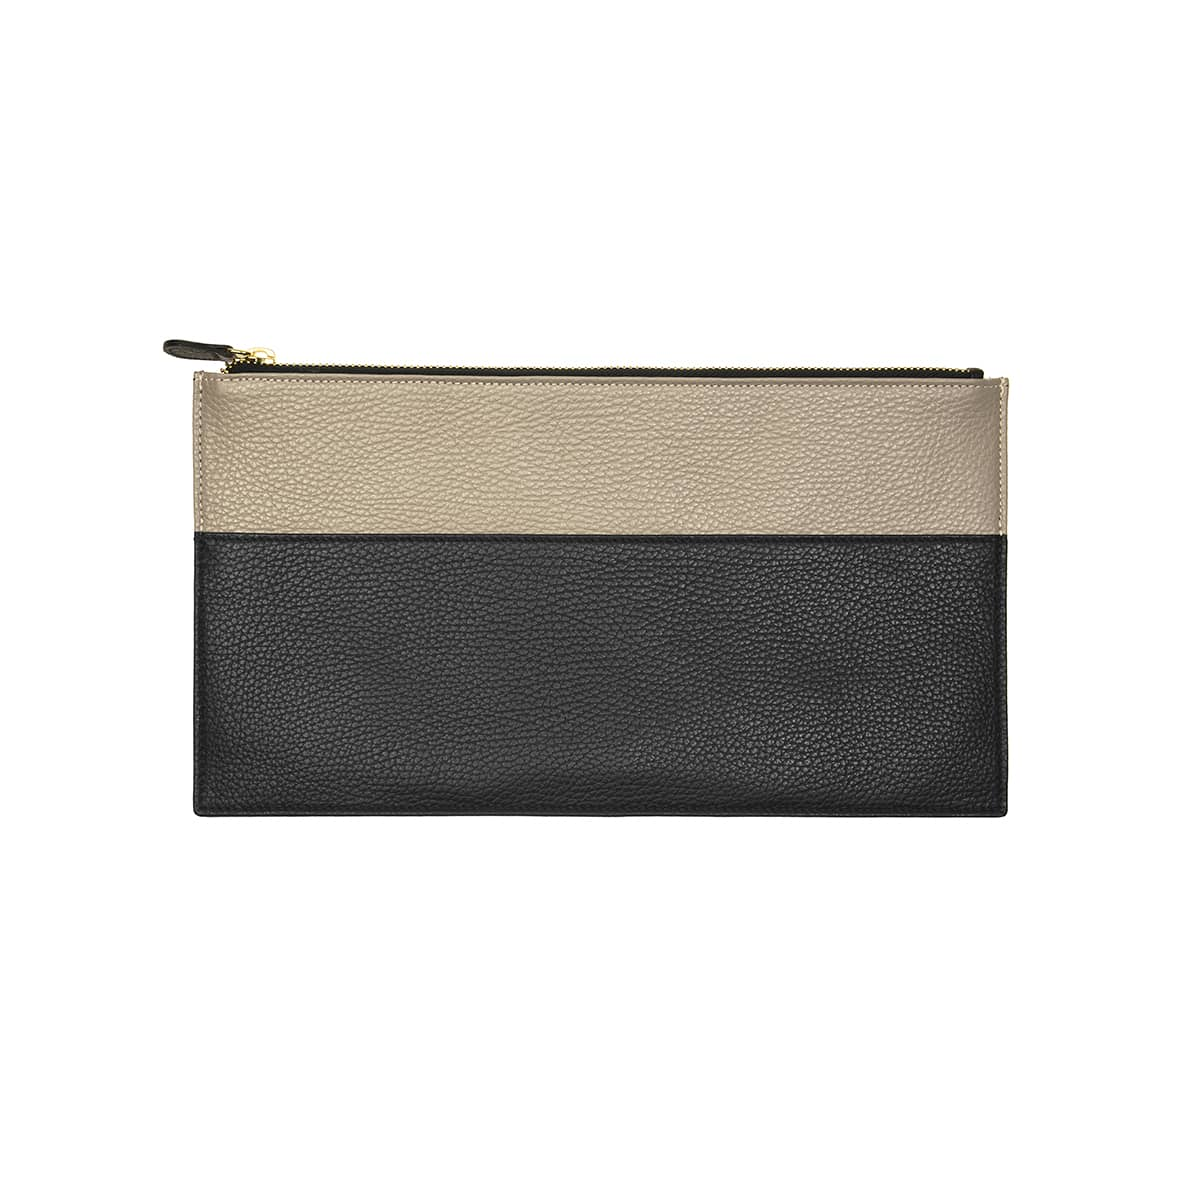 Slim Clutch - black & taupe by Coralie de Seynes Cow leather. Golden Zip. Clutch bagcomes with a cotton cover. Material: Blackand taupe grained cowleather. Golden zip and cotton Lining.